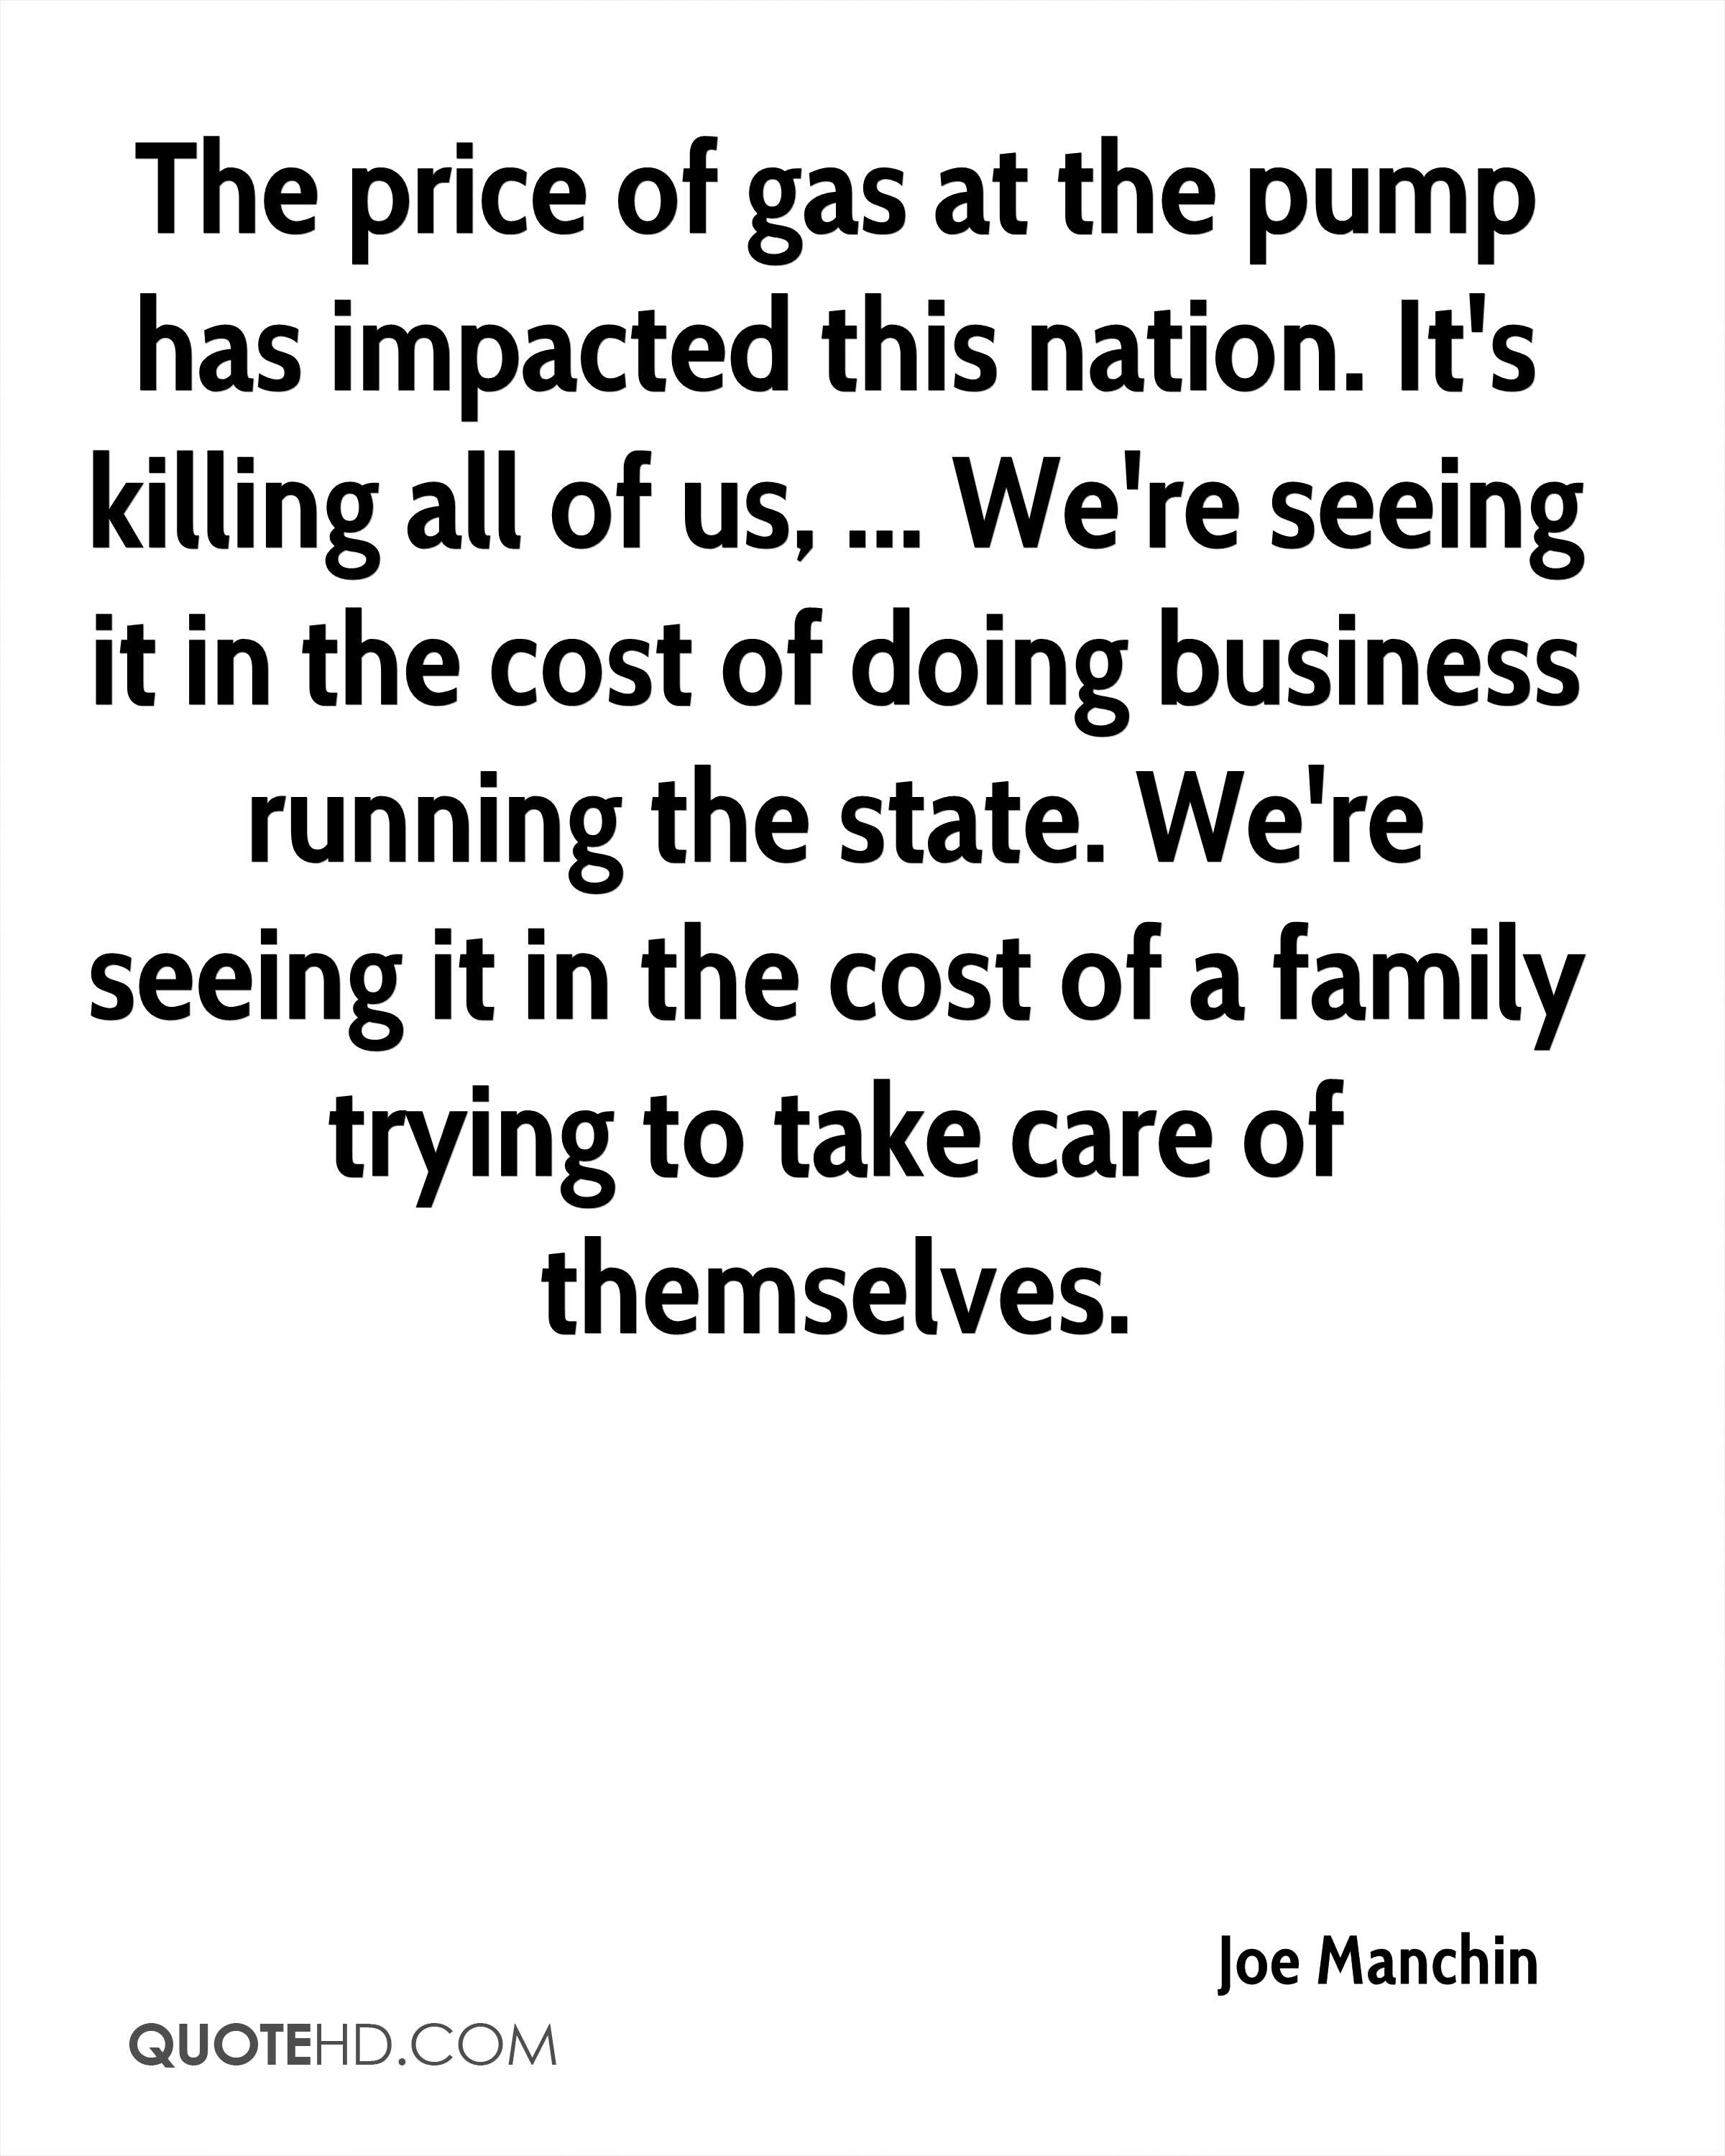 The price of gas at the pump has impacted this nation. It's killing all of us, ... We're seeing it in the cost of doing business running the state. We're seeing it in the cost of a family trying to take care of themselves.